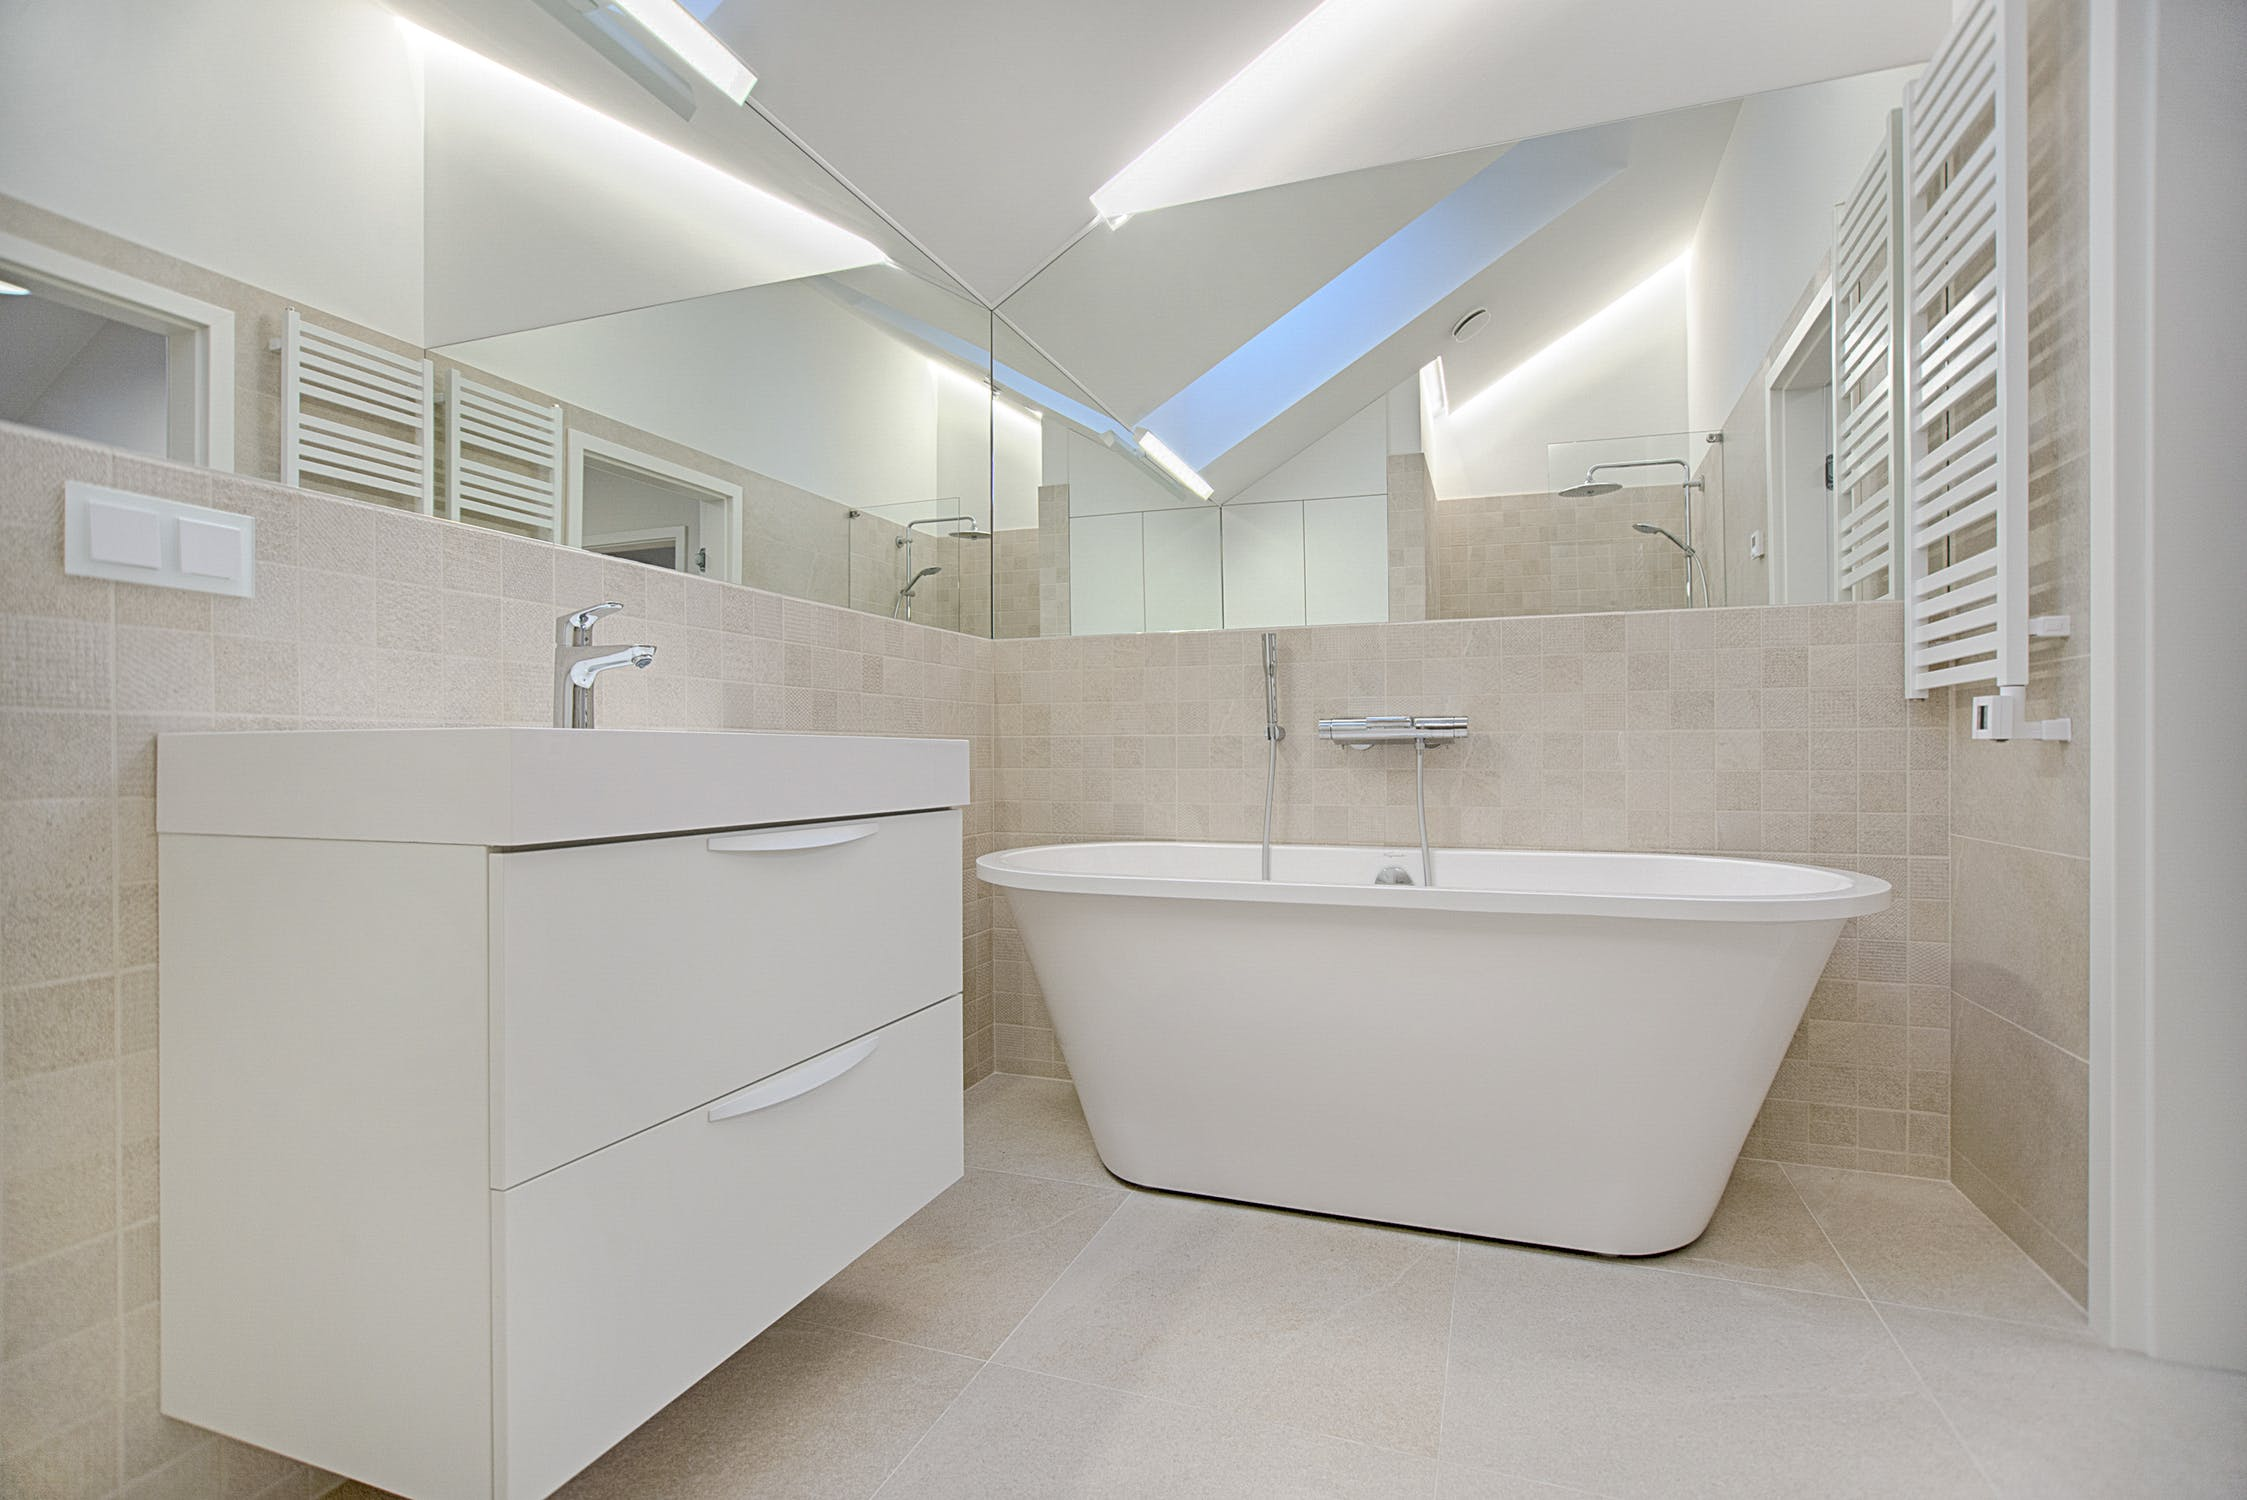 bathtub resurfacing southwest ranches